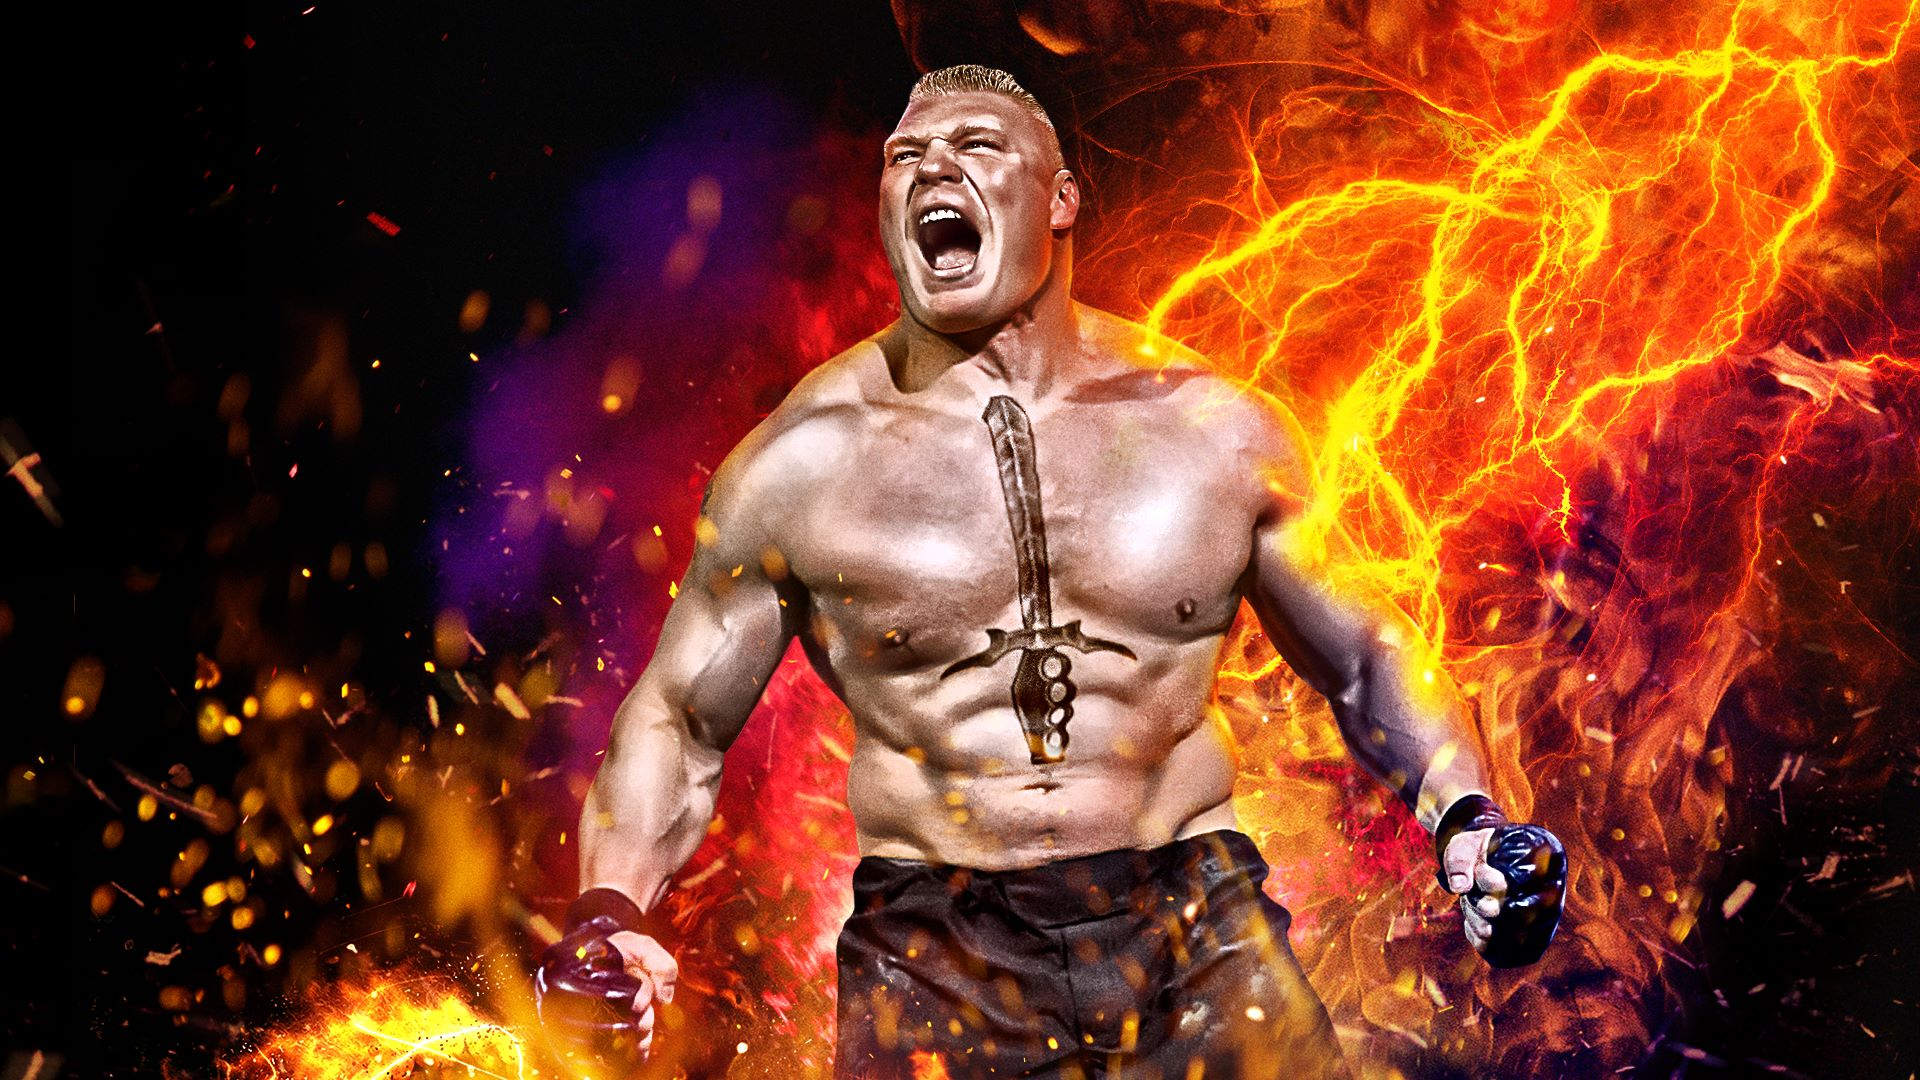 More of the same isn't always bad… - WWE 2K17 isn't as robust an offering as the 2016 title, but adds a lot of well-liked new content, tightens up the controls a bit, and reintroduces WCW's dominant Goldberg to the 'WWE Universe.'